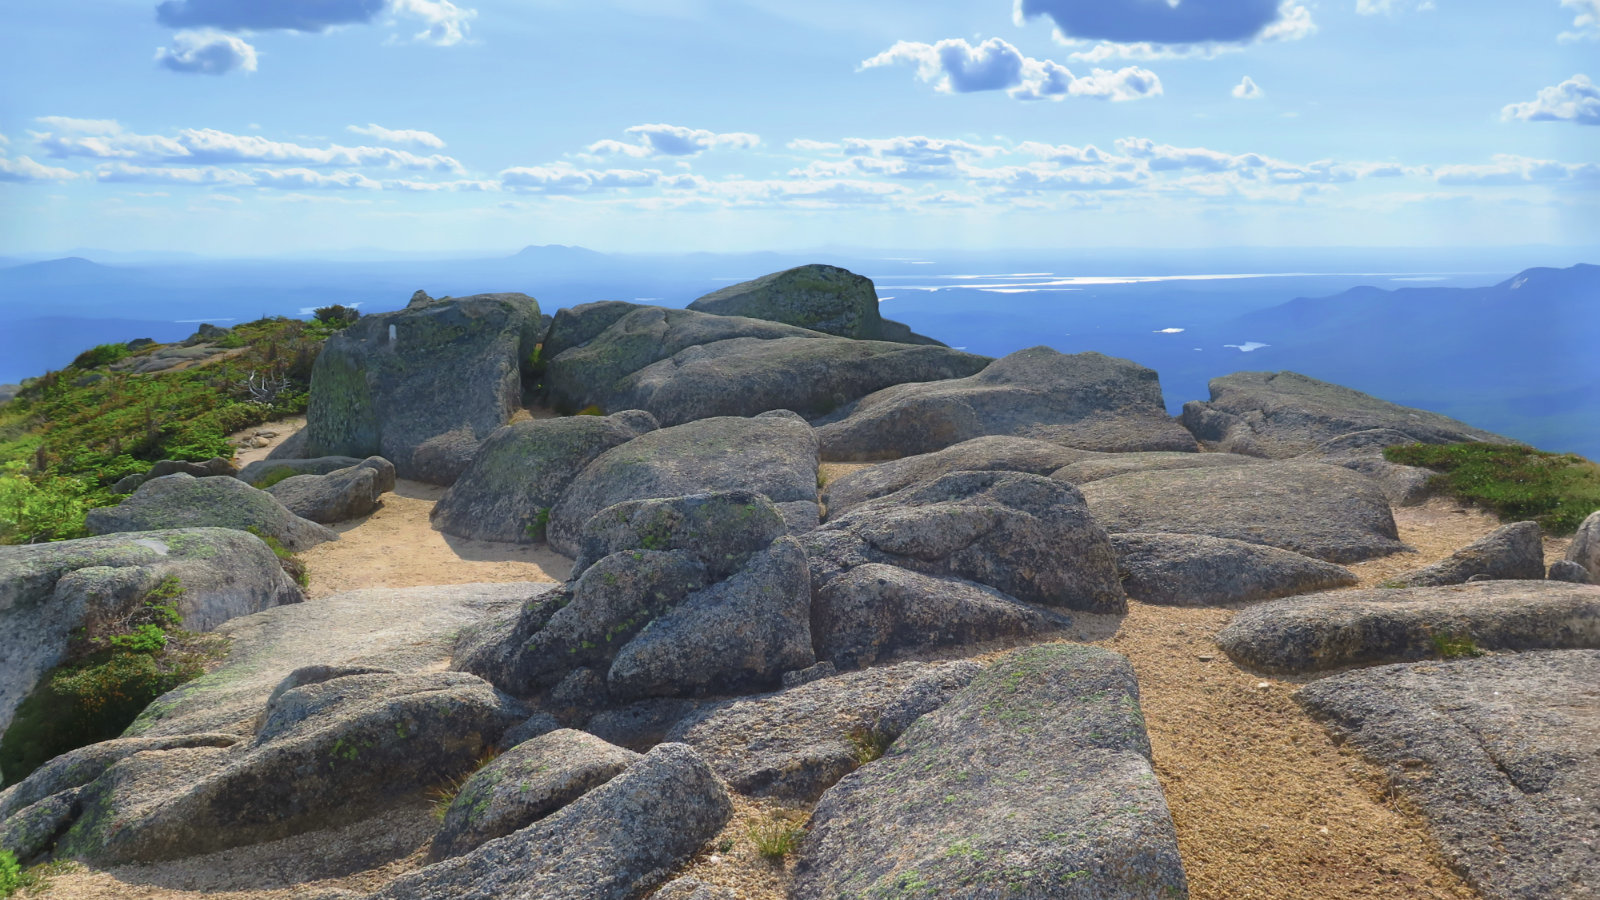 Tableland-Rocks-Katahdin-BSP-20190703